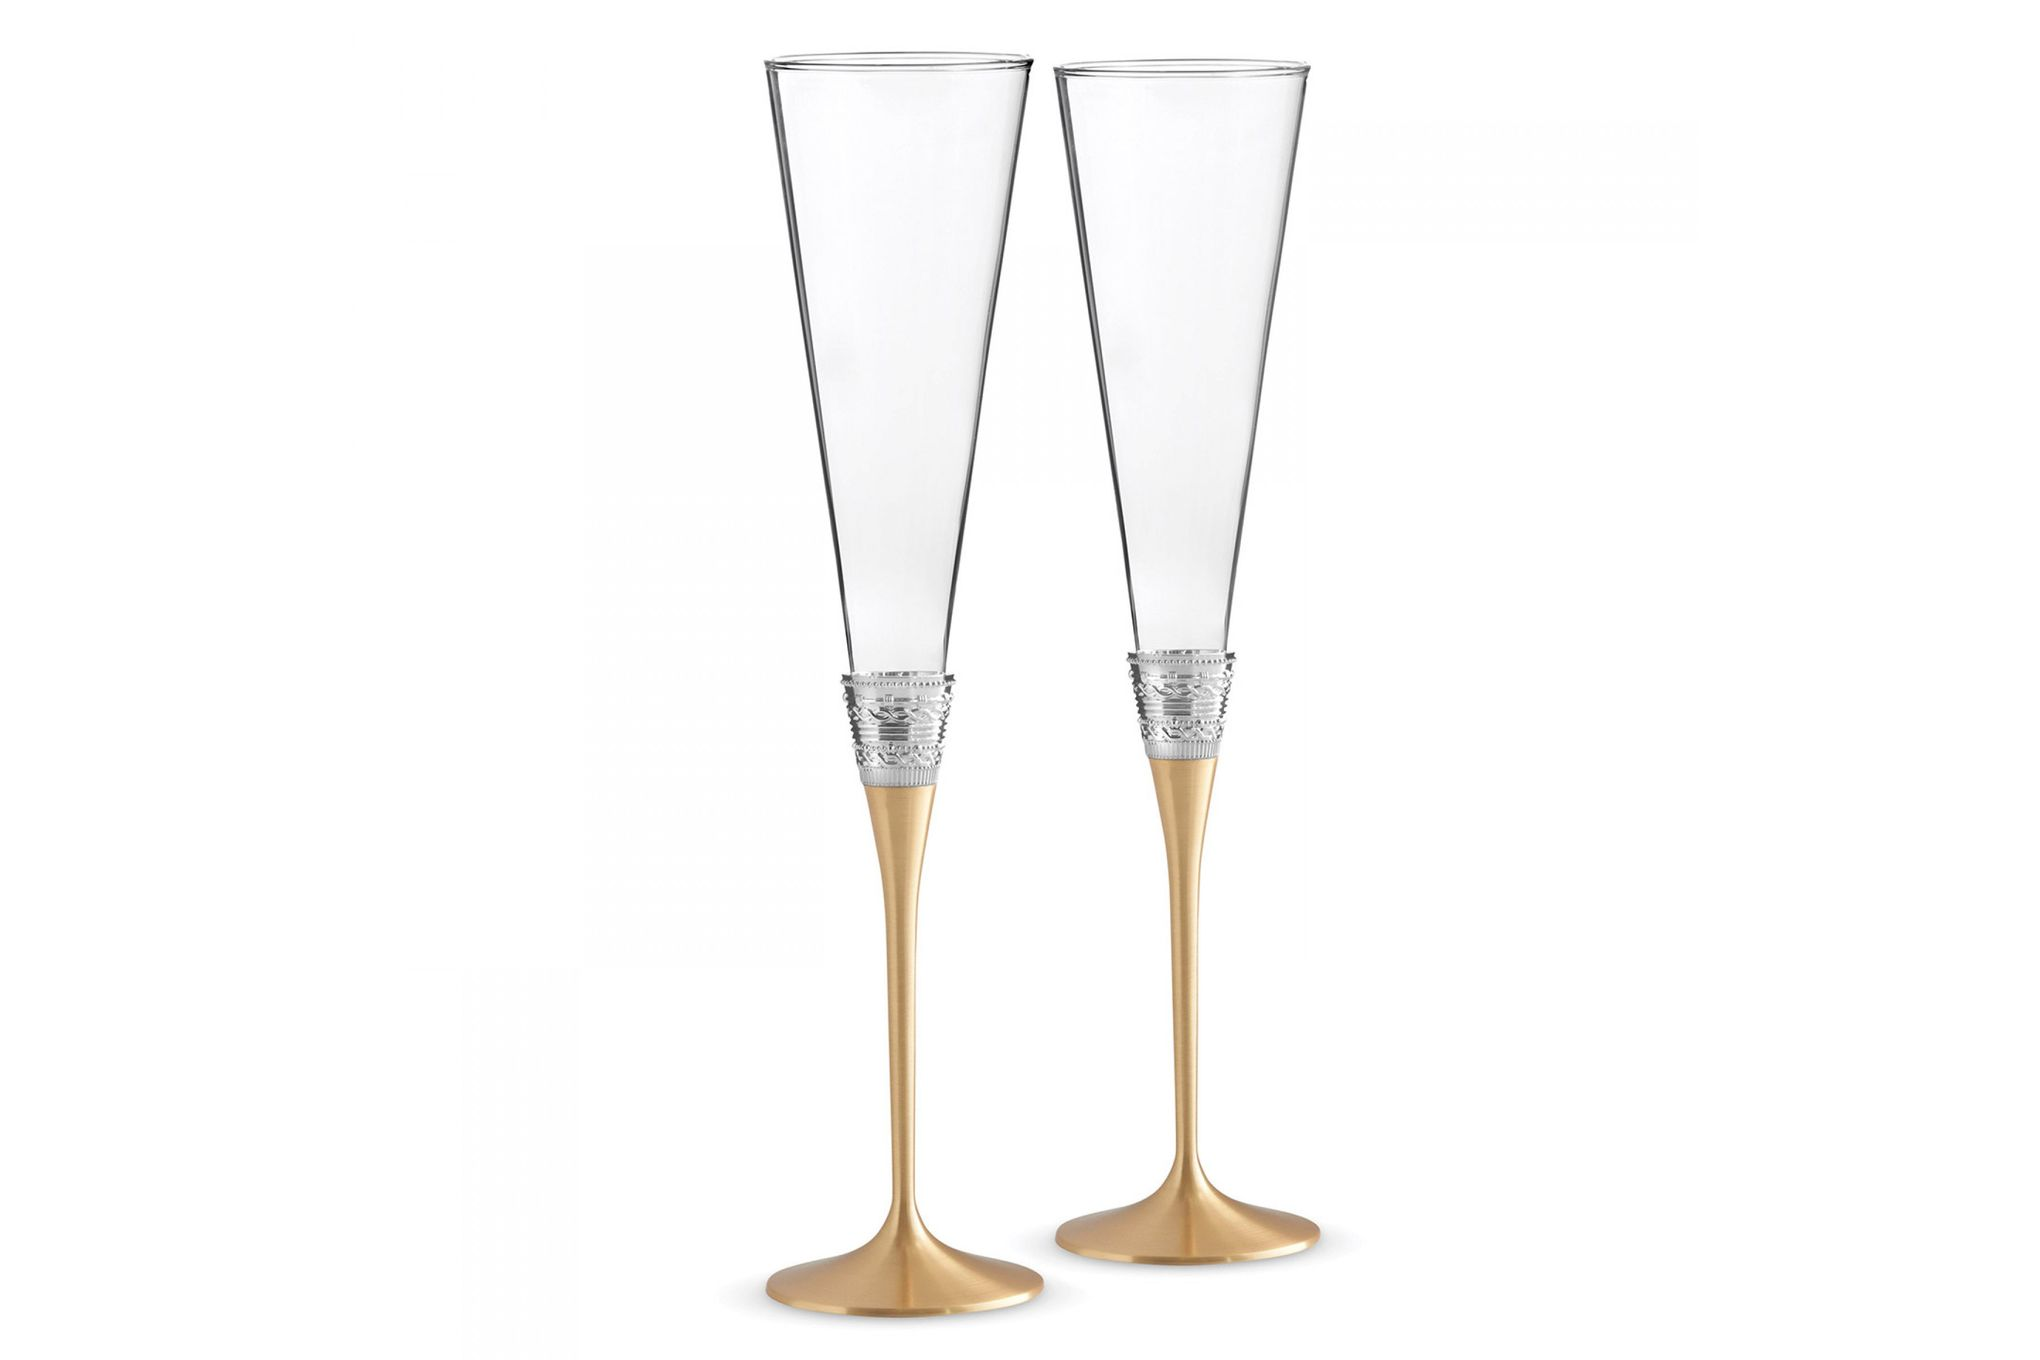 Vera Wang for Wedgwood Gifts & Accessories Toasting Flute Pair With Love Gold thumb 1